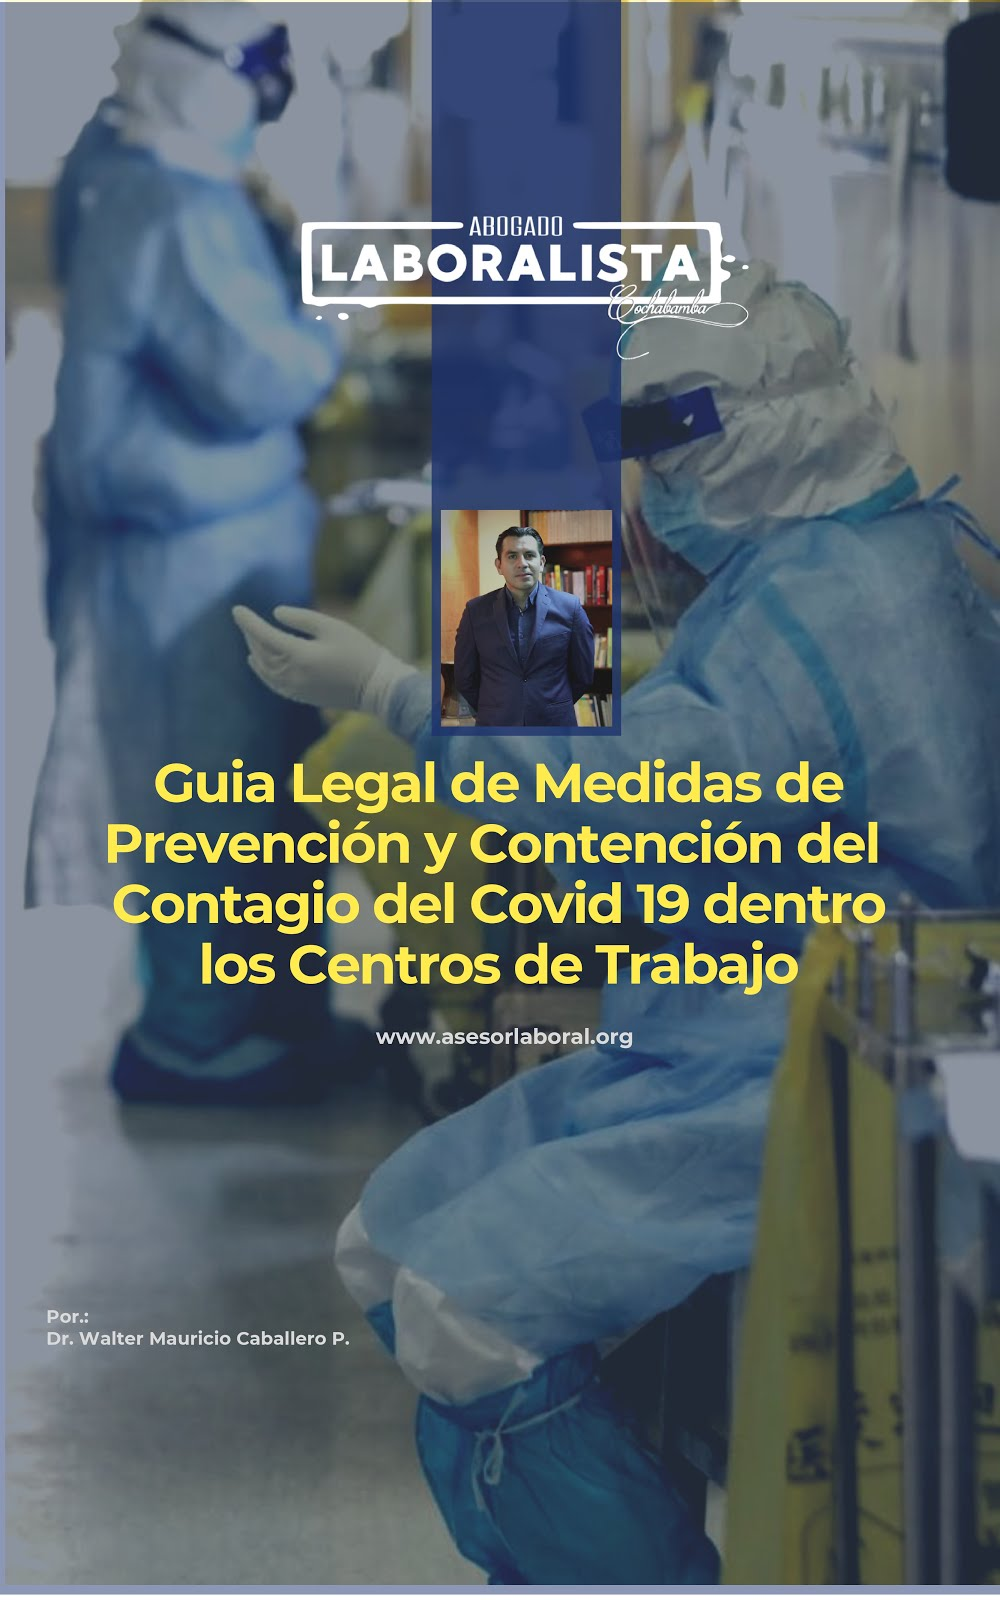 GUÍA LEGAL DE MEDIDAS DE PREVENCIÓN Y CONTENCIÓN DEL CONTAGIO DEL COVID 19 EN LOS CENTROS LABORALES